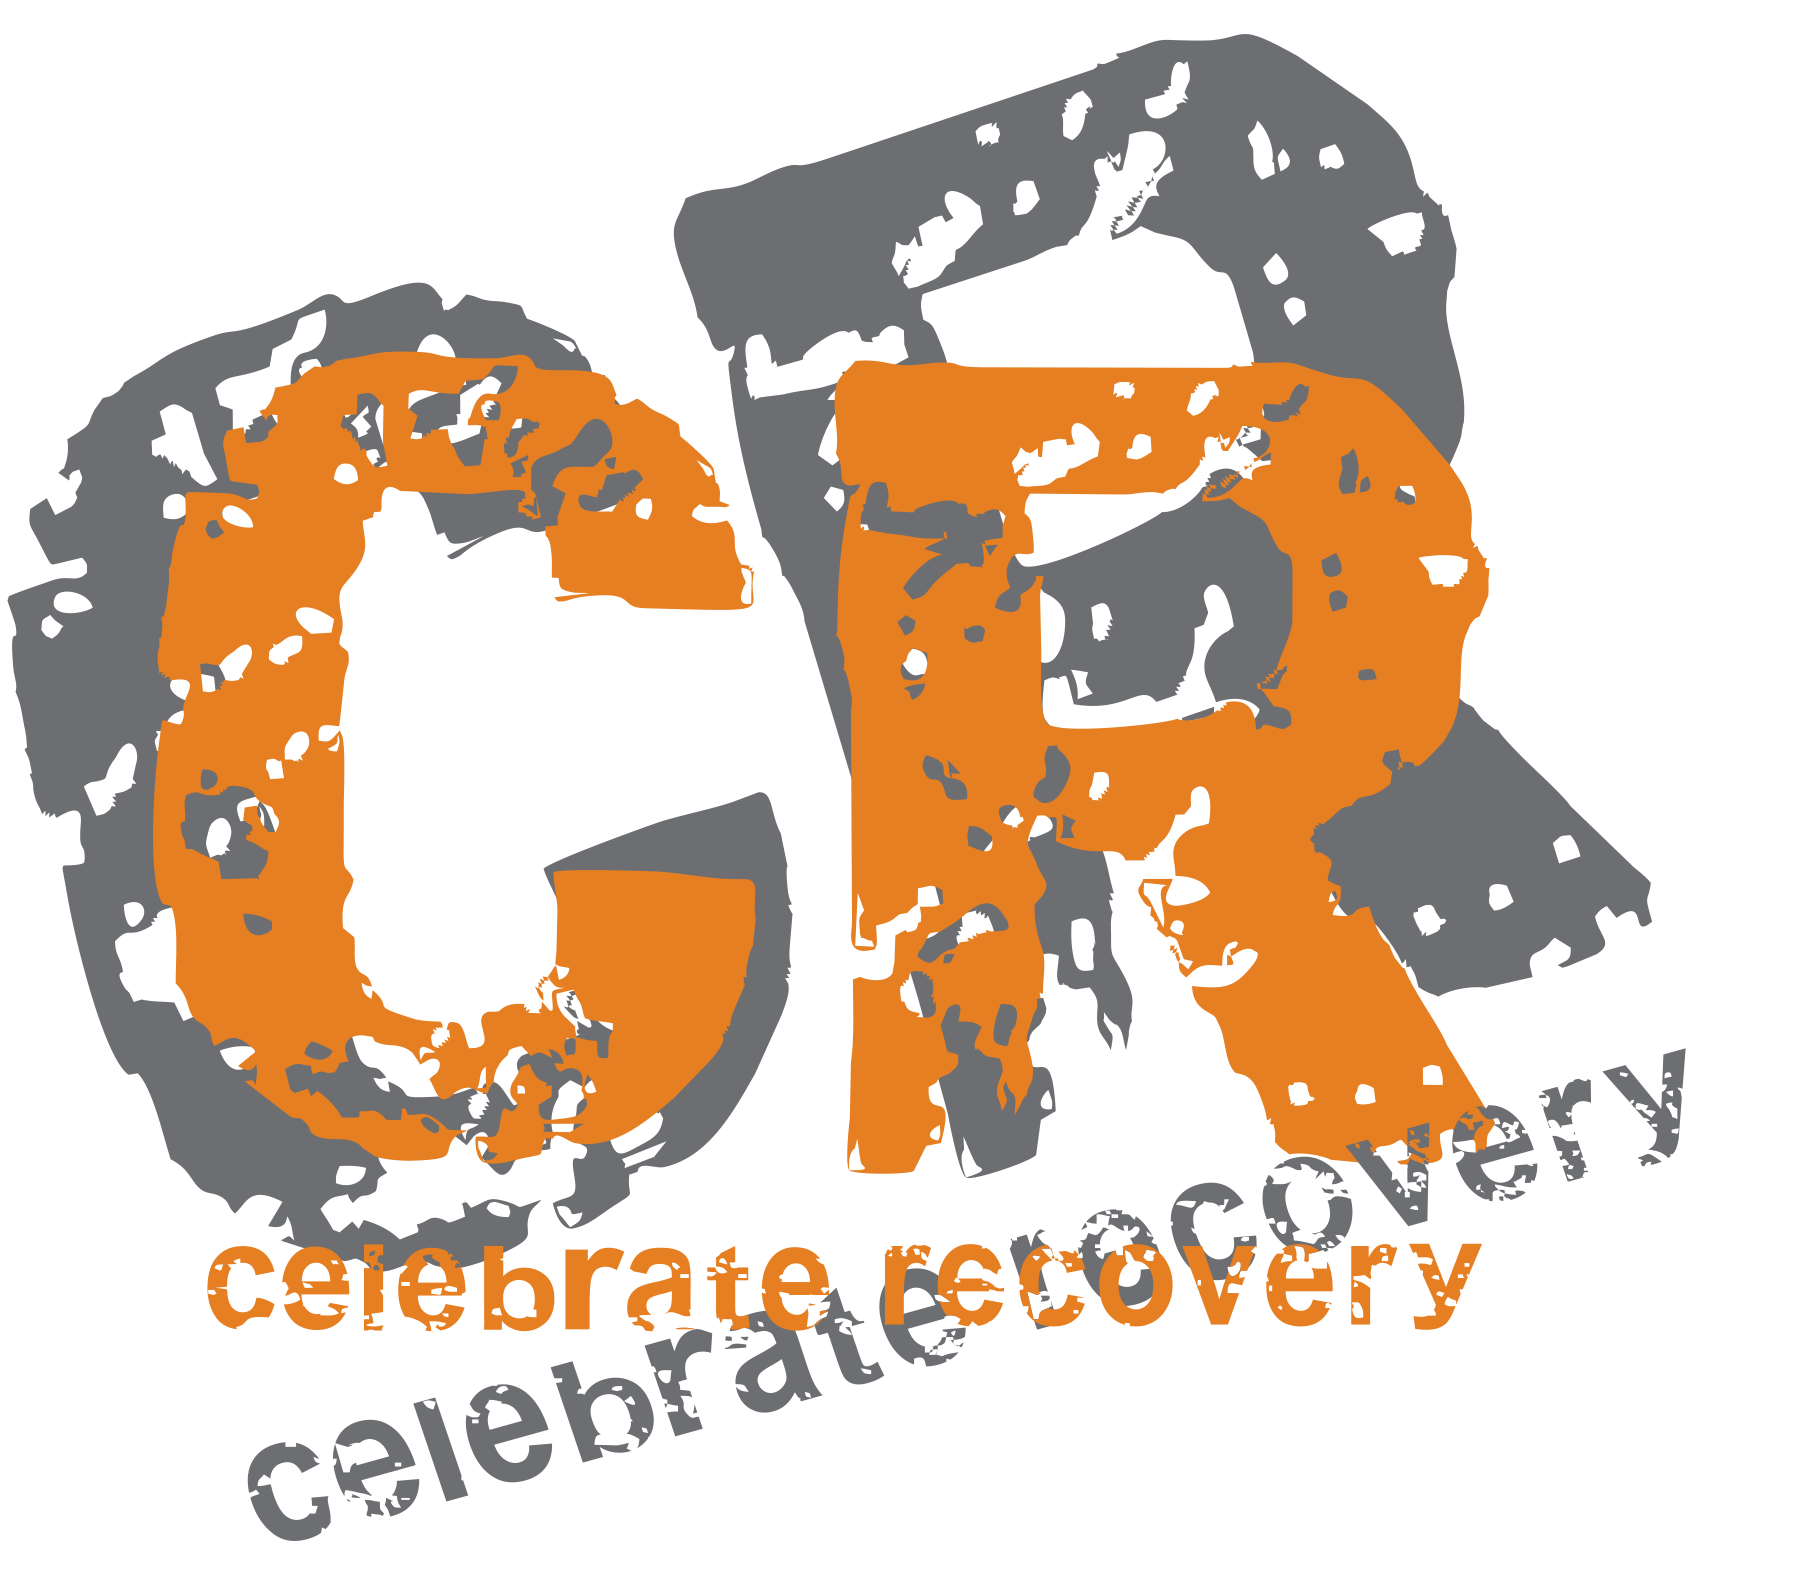 Image Result For Celebrate Recovery Celebrate Recovery Recovery Celebrities